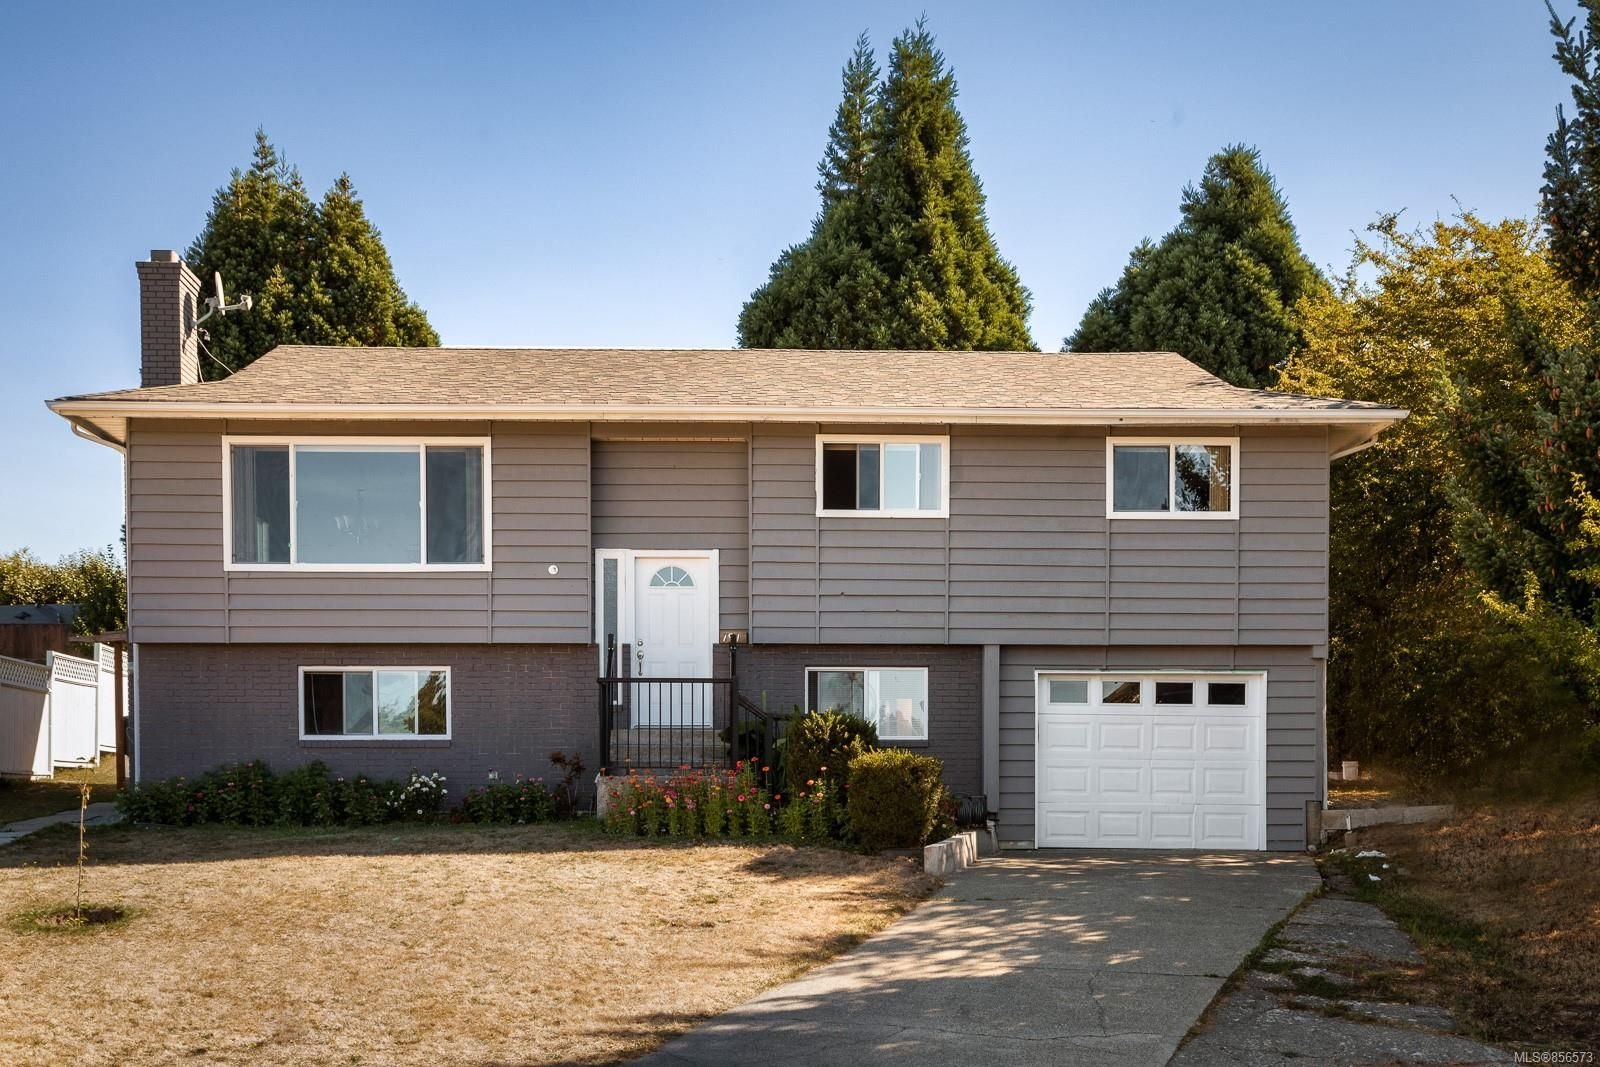 Main Photo: 791 Cameo St in : SE High Quadra House for sale (Saanich East)  : MLS®# 856573